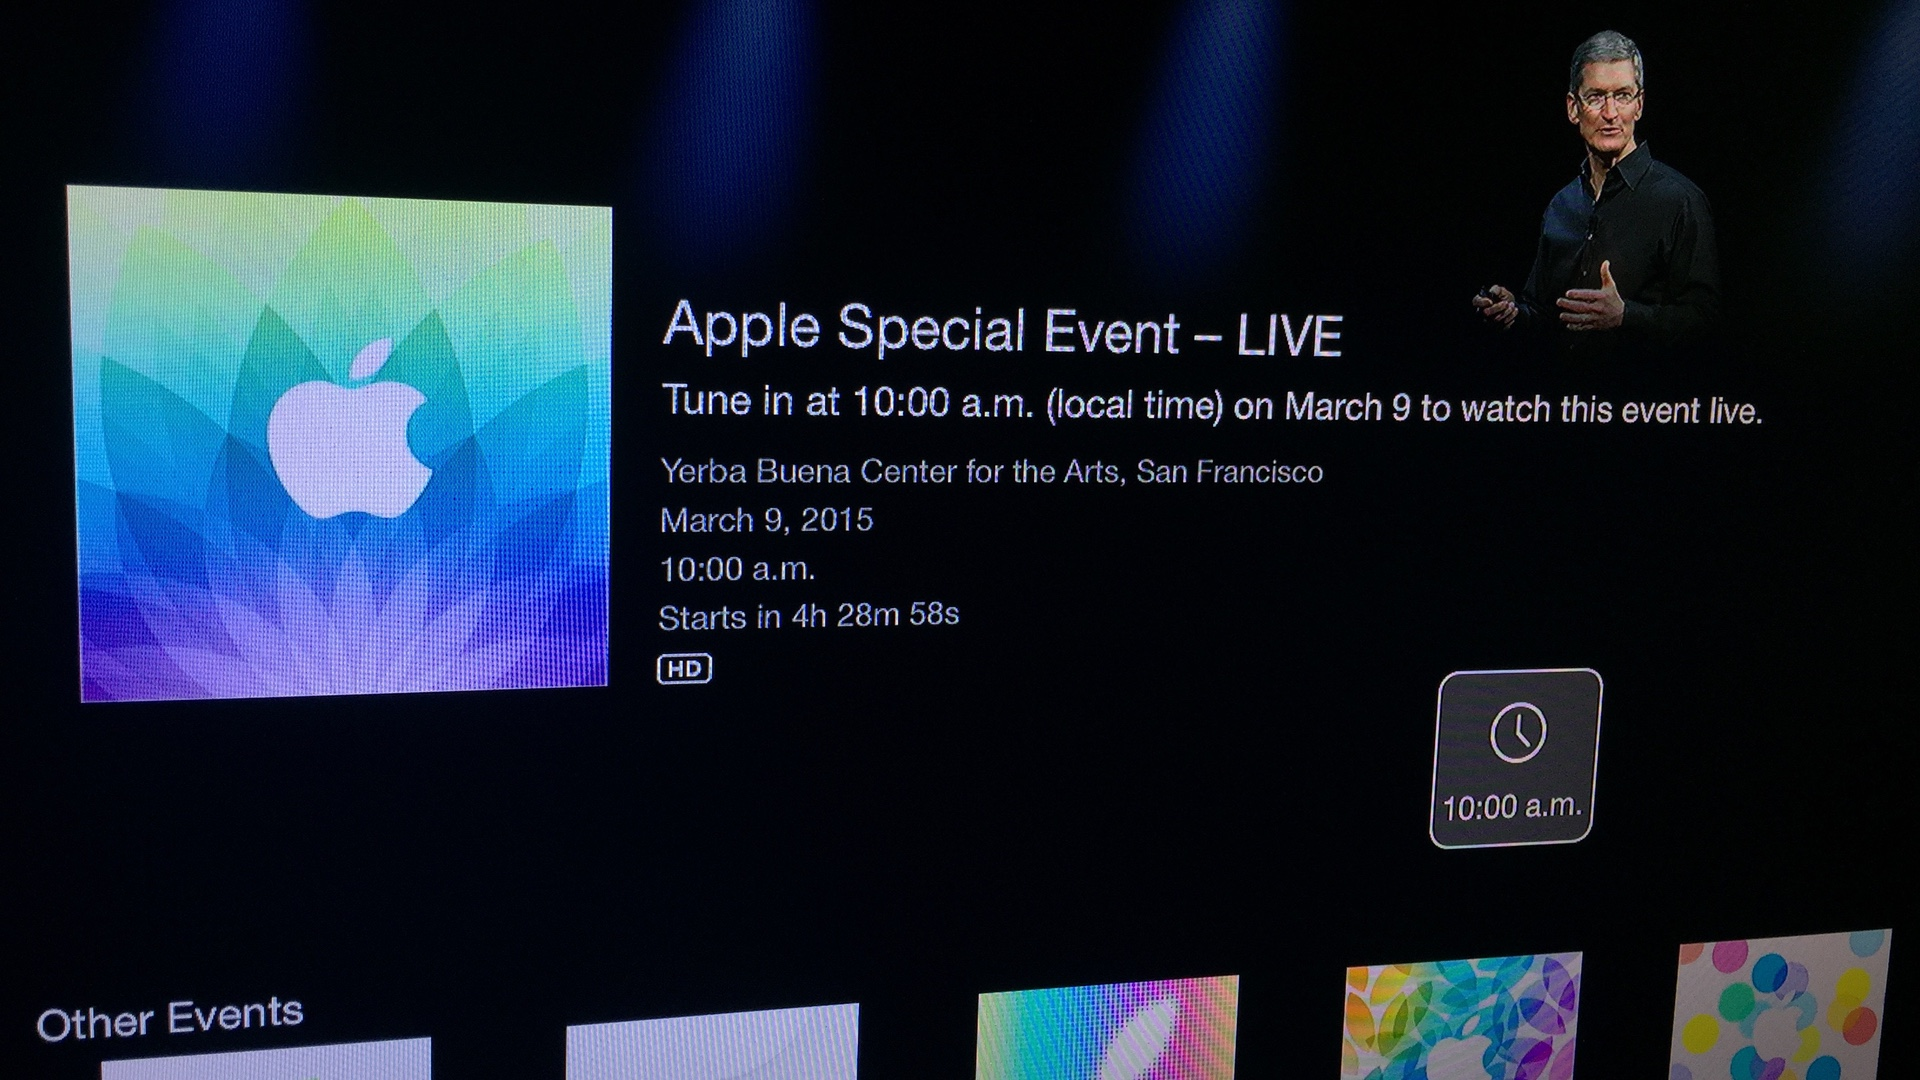 Apple Special Event Live March 09 2015 Apple TV